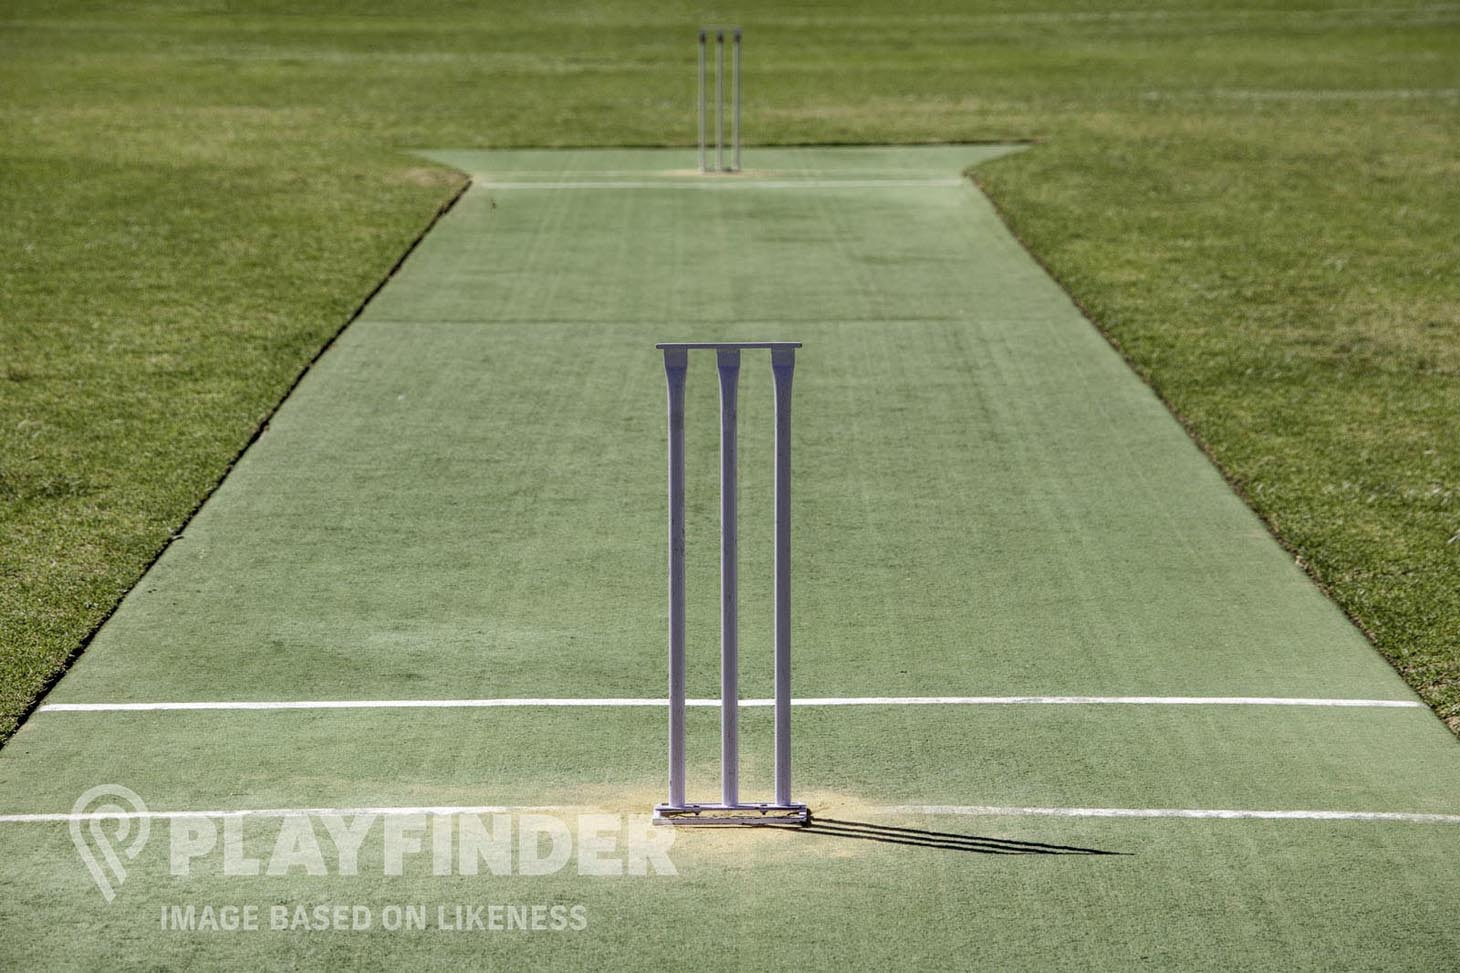 South West Manchester Cricket Club Full size | Grass cricket facilities